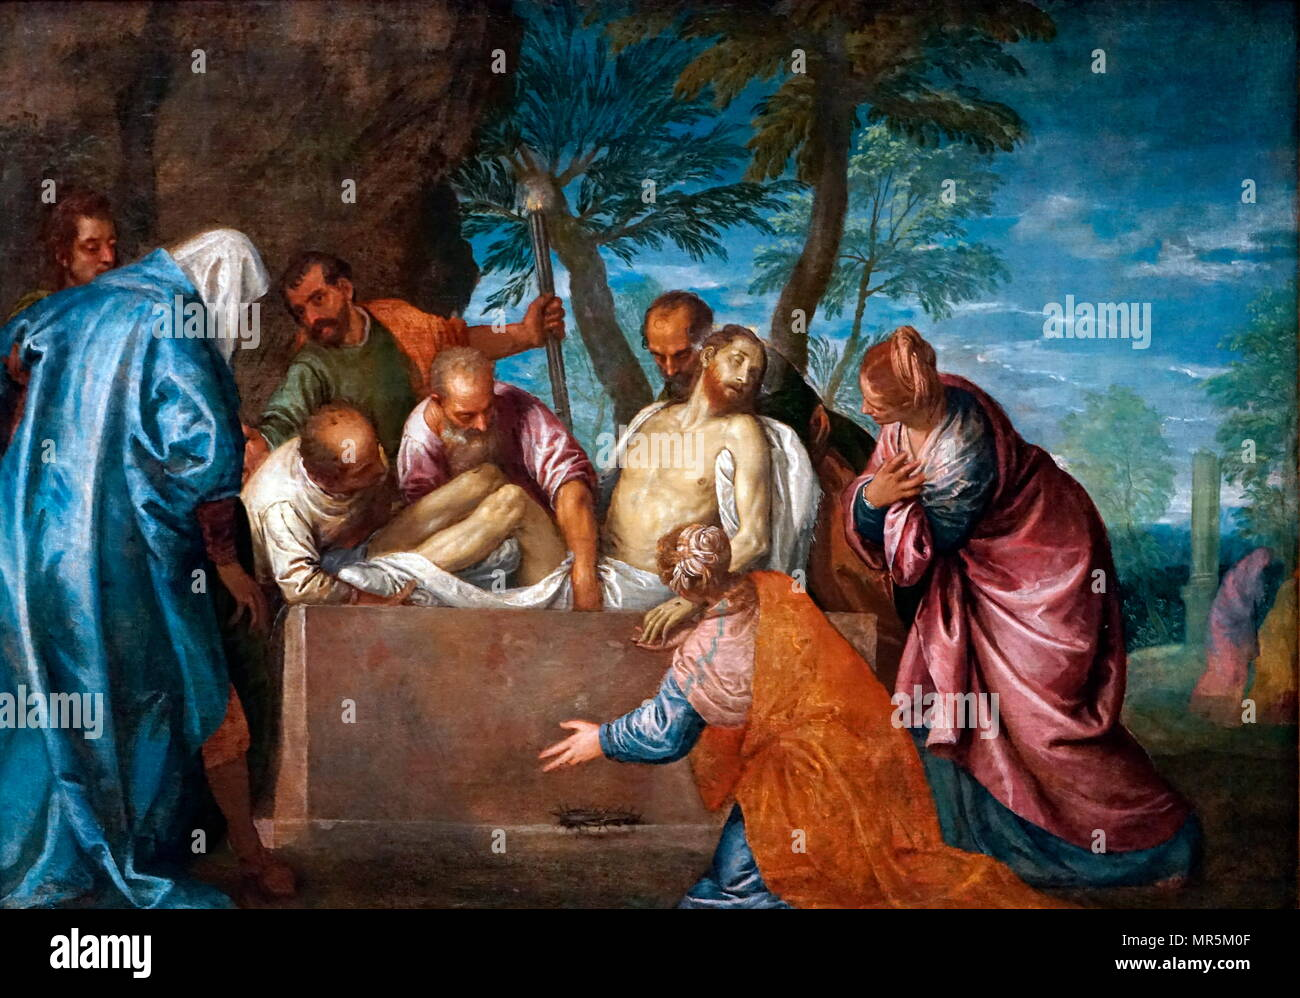 Entombment of Christ by Paolo Veronese - circa 1575-1580 - Stock Image